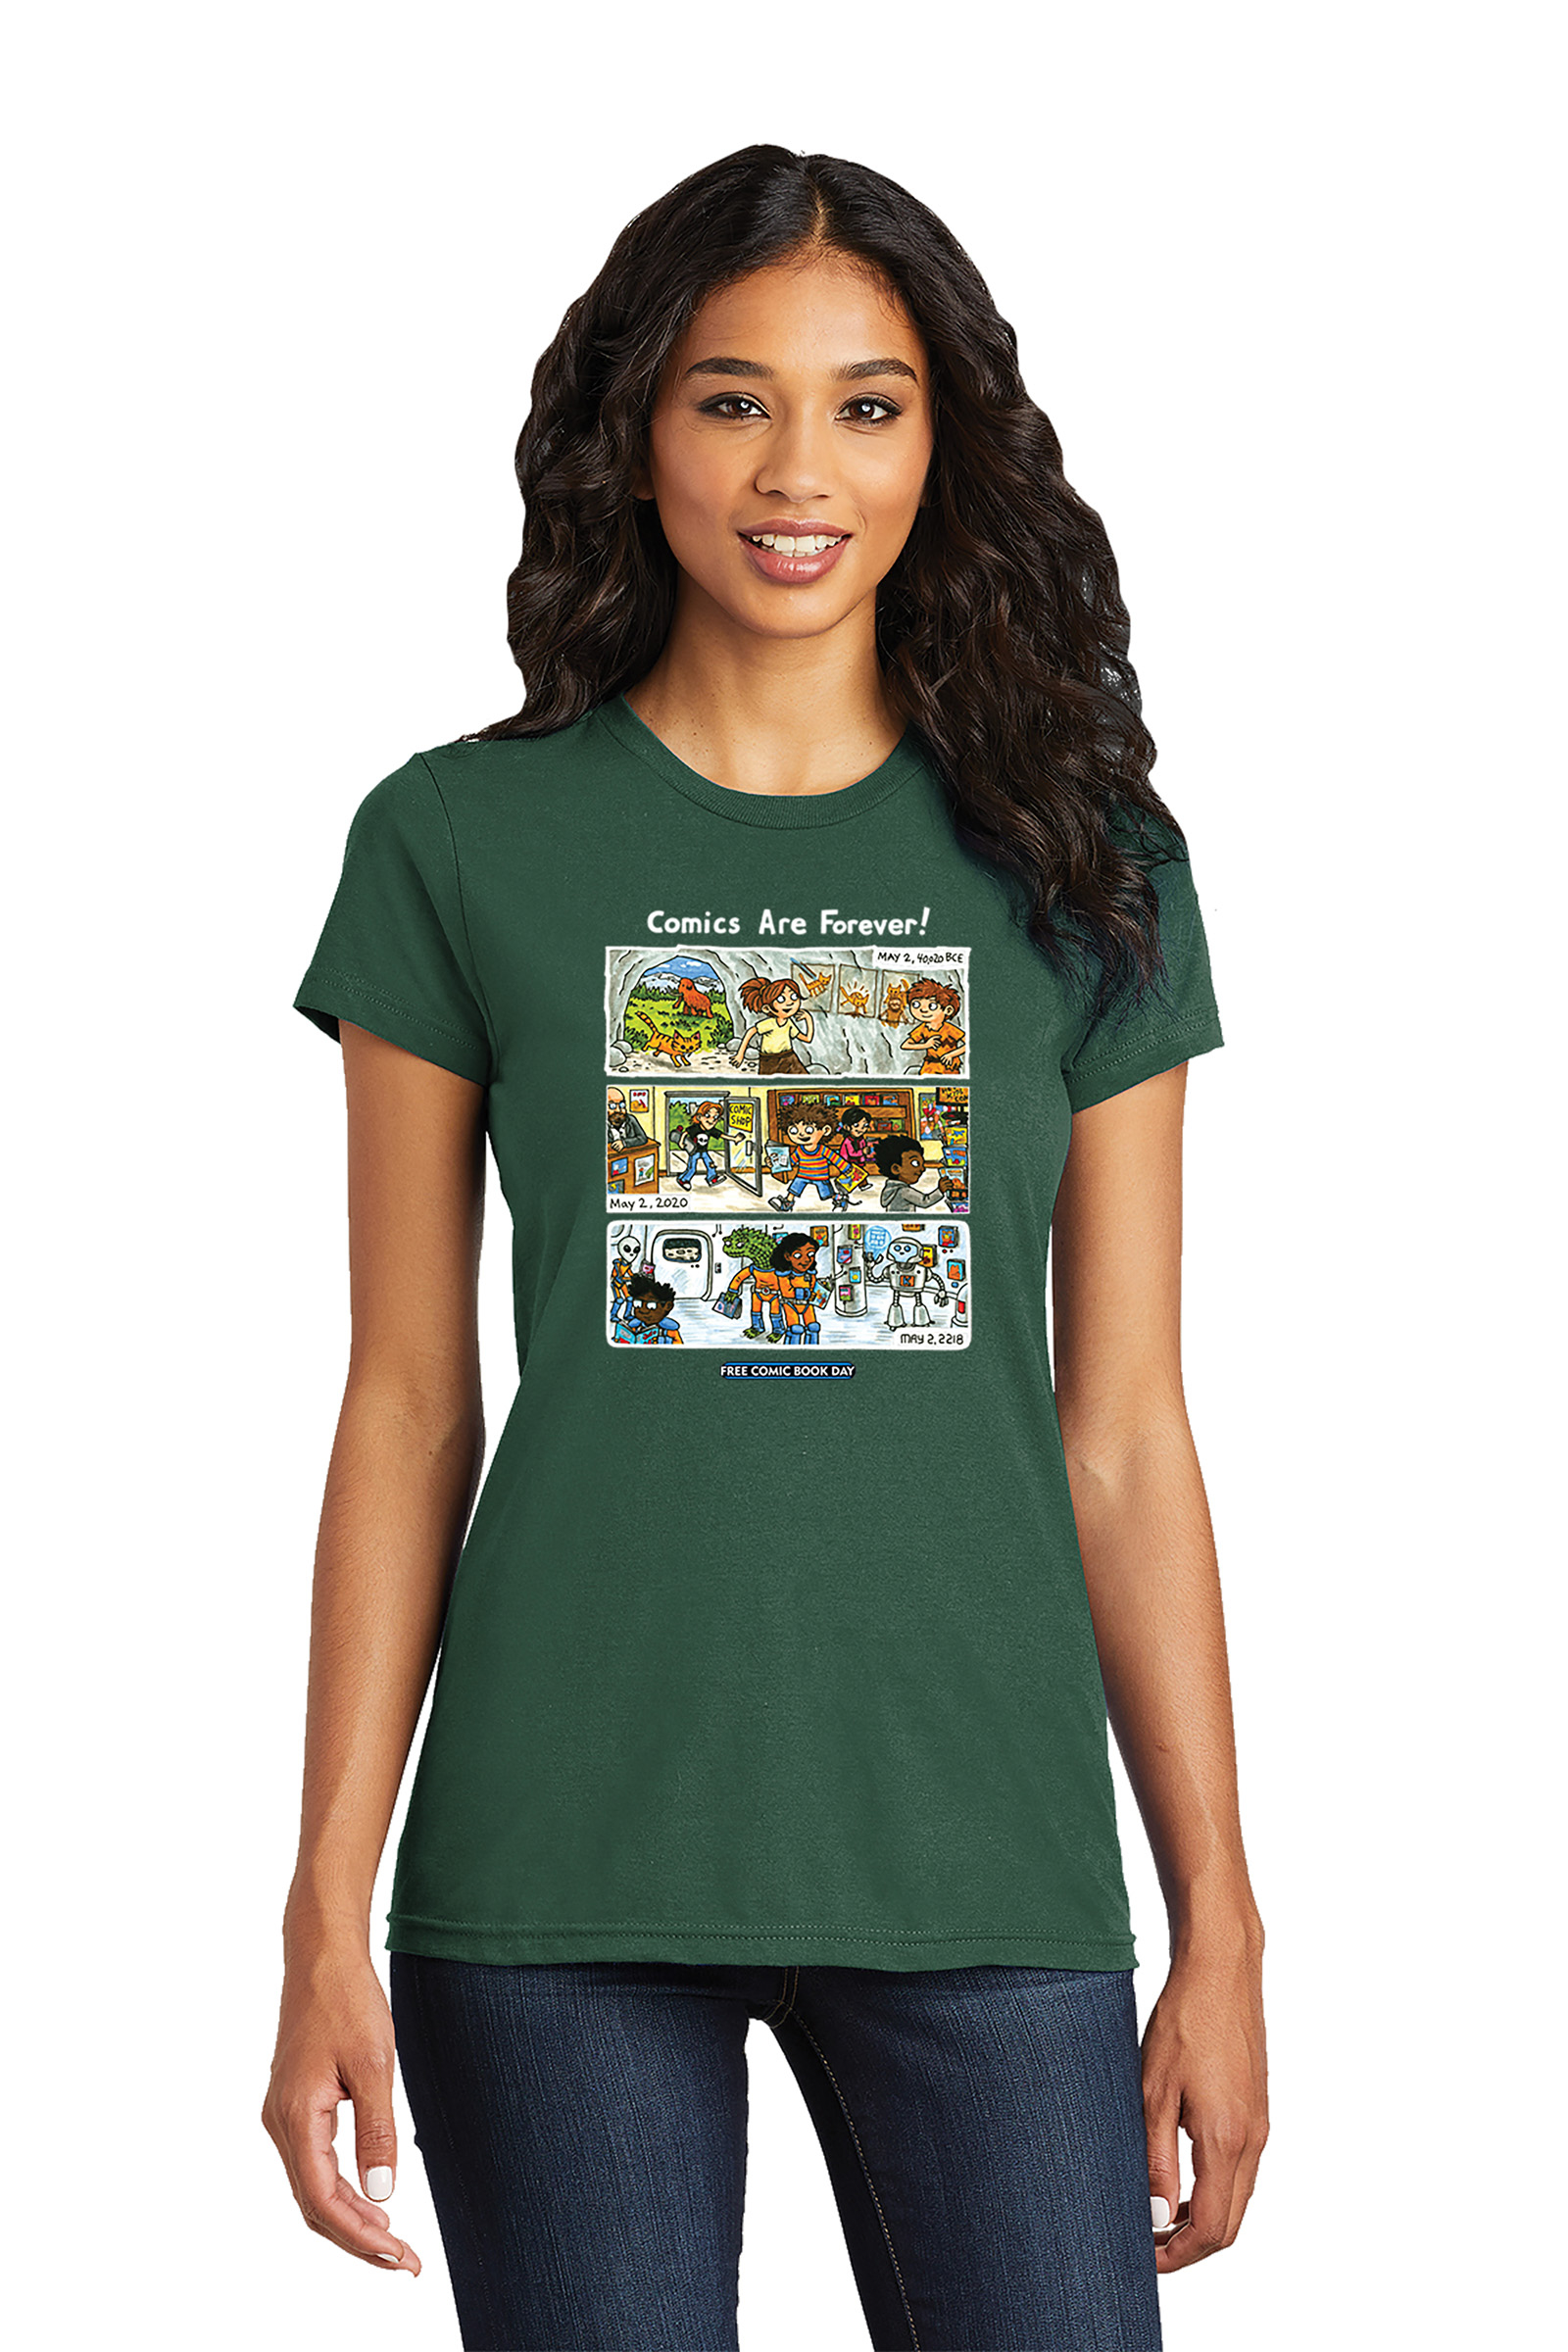 FCBD 2020 COMM ARTIST BROWN WOMEN FOREST GREEN T/S MED